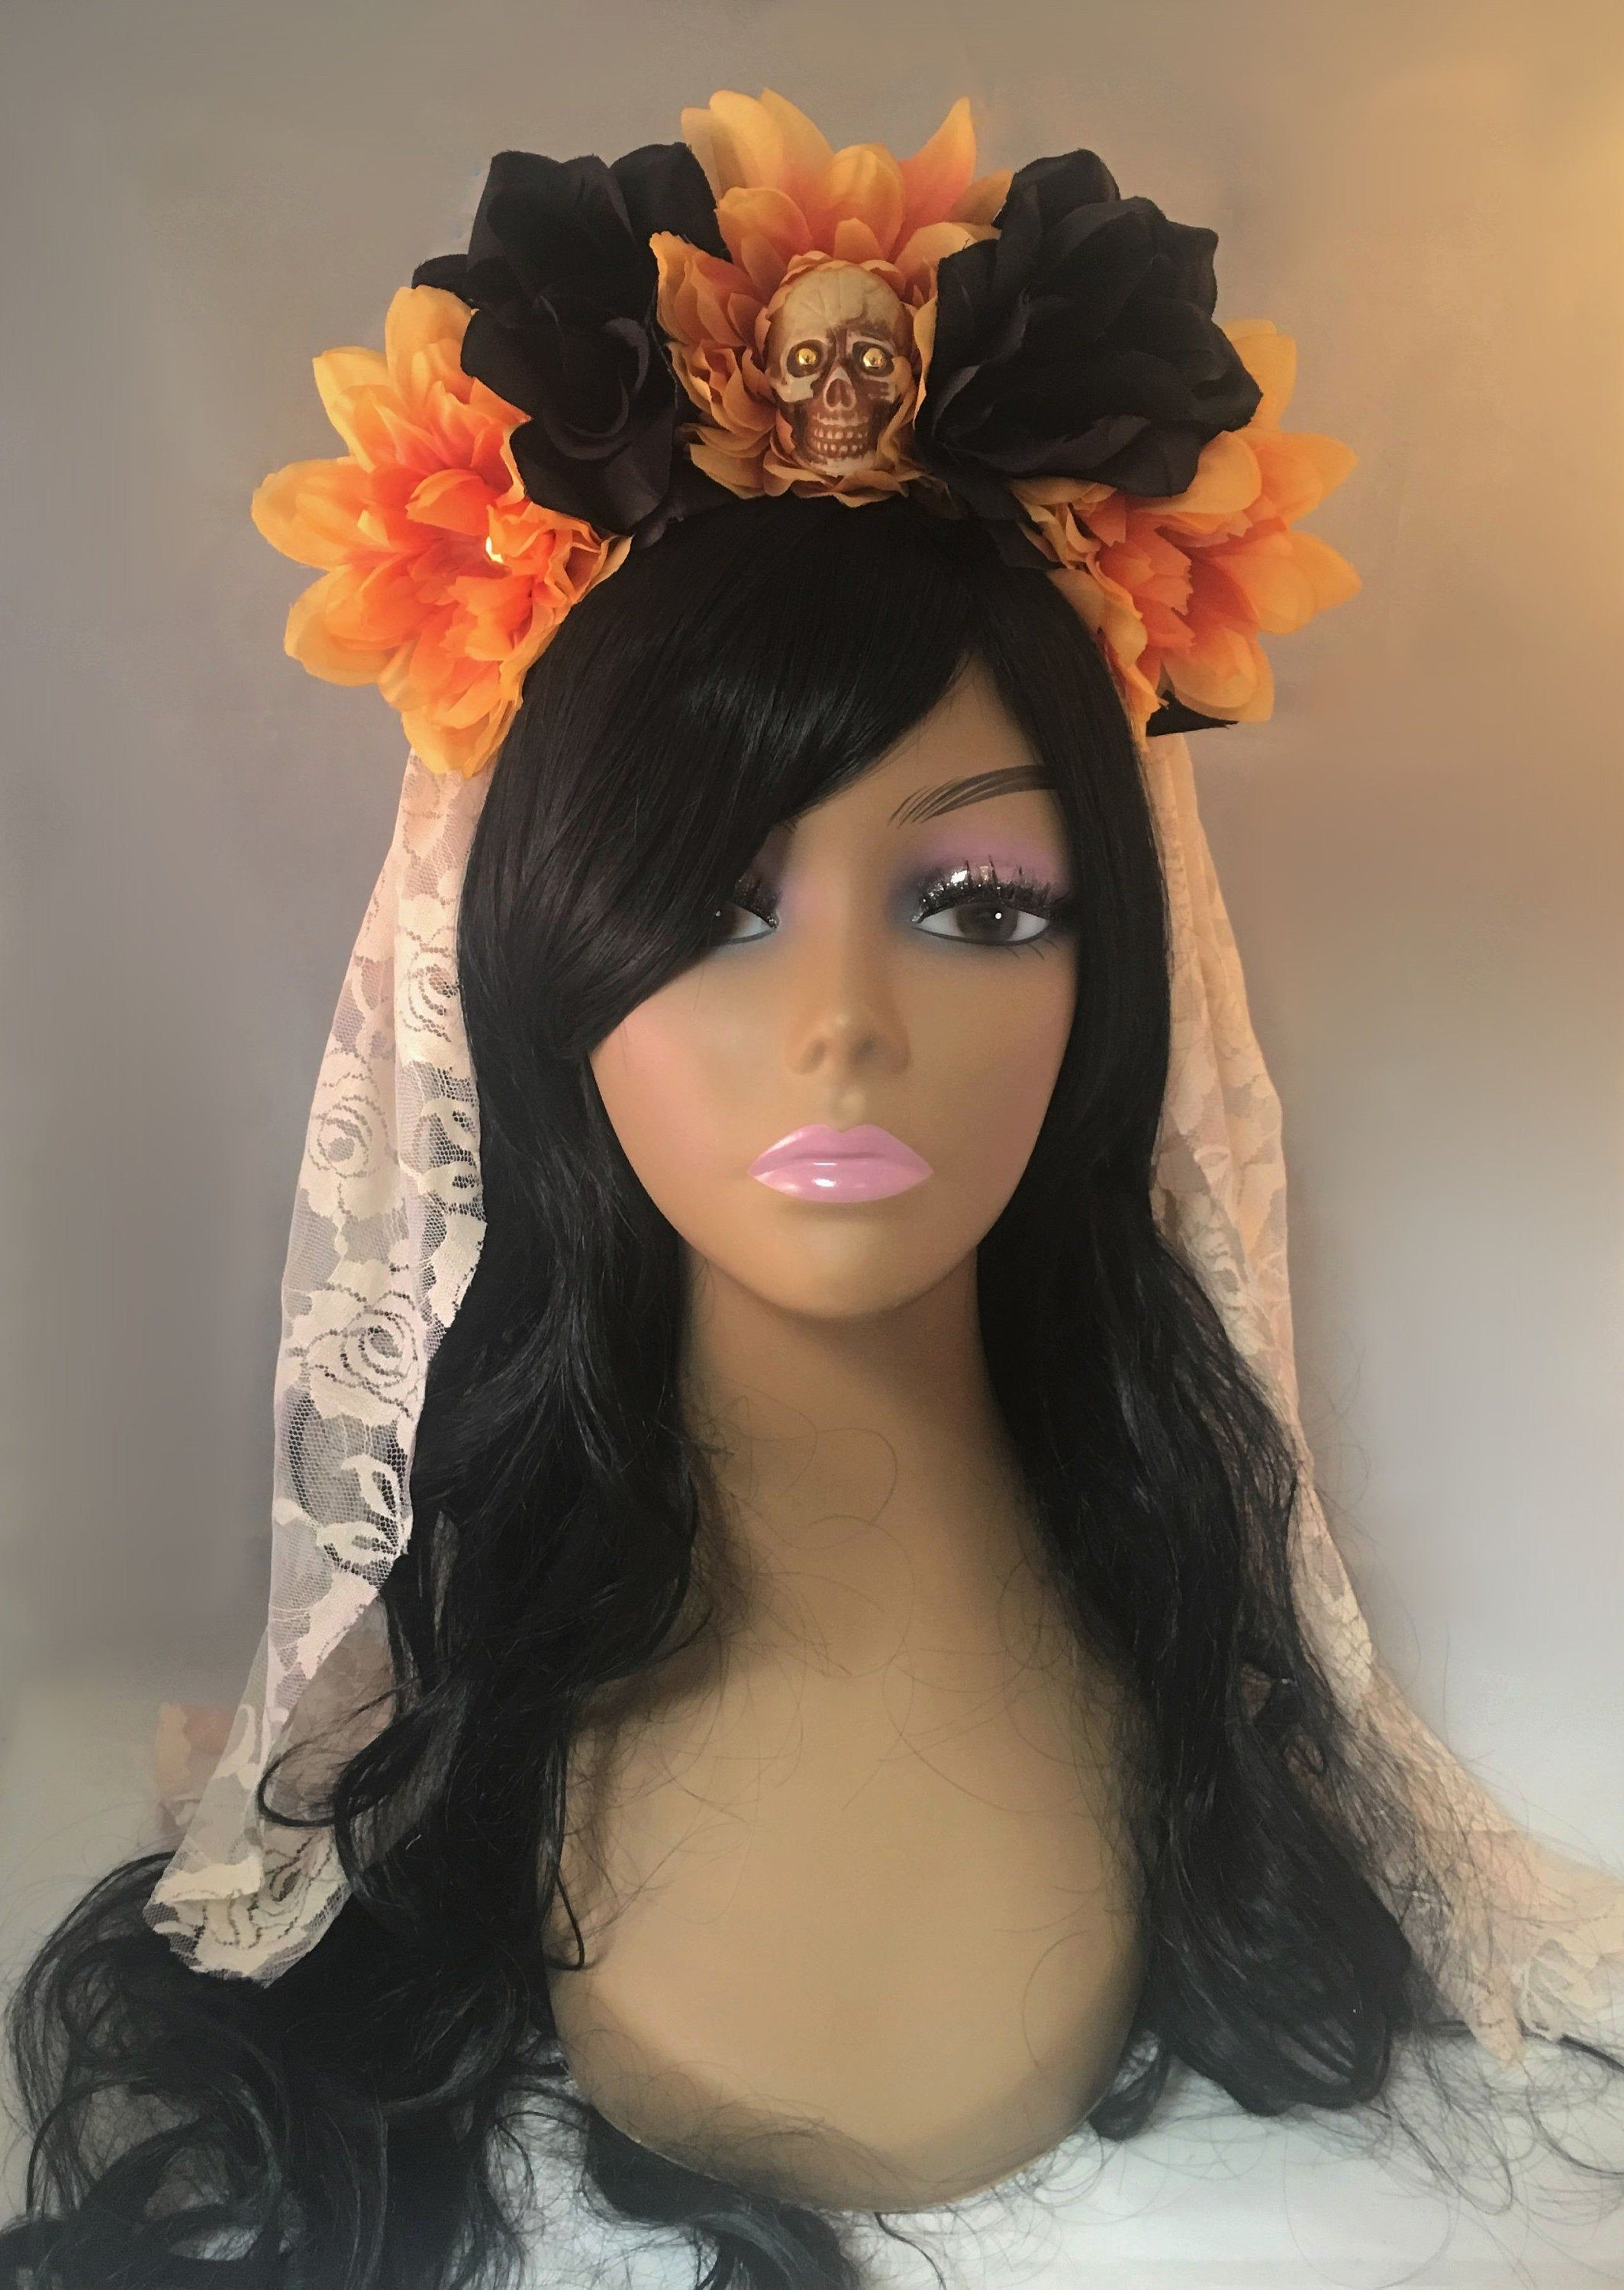 Flower Crown, Rose Skull Crown, Veiled Headband, Flower Head Wreath, Floral Headpiece, Floral Crown, Day of the Dead Flower Crown, Halloween #flowerheadwreaths Flower Crown, Rose Skull Crown, Veiled Headband, Flower Head Wreath, Floral Headpiece, Floral Crown, Day of the Dead Flower Crown, Halloween #flowerheadwreaths